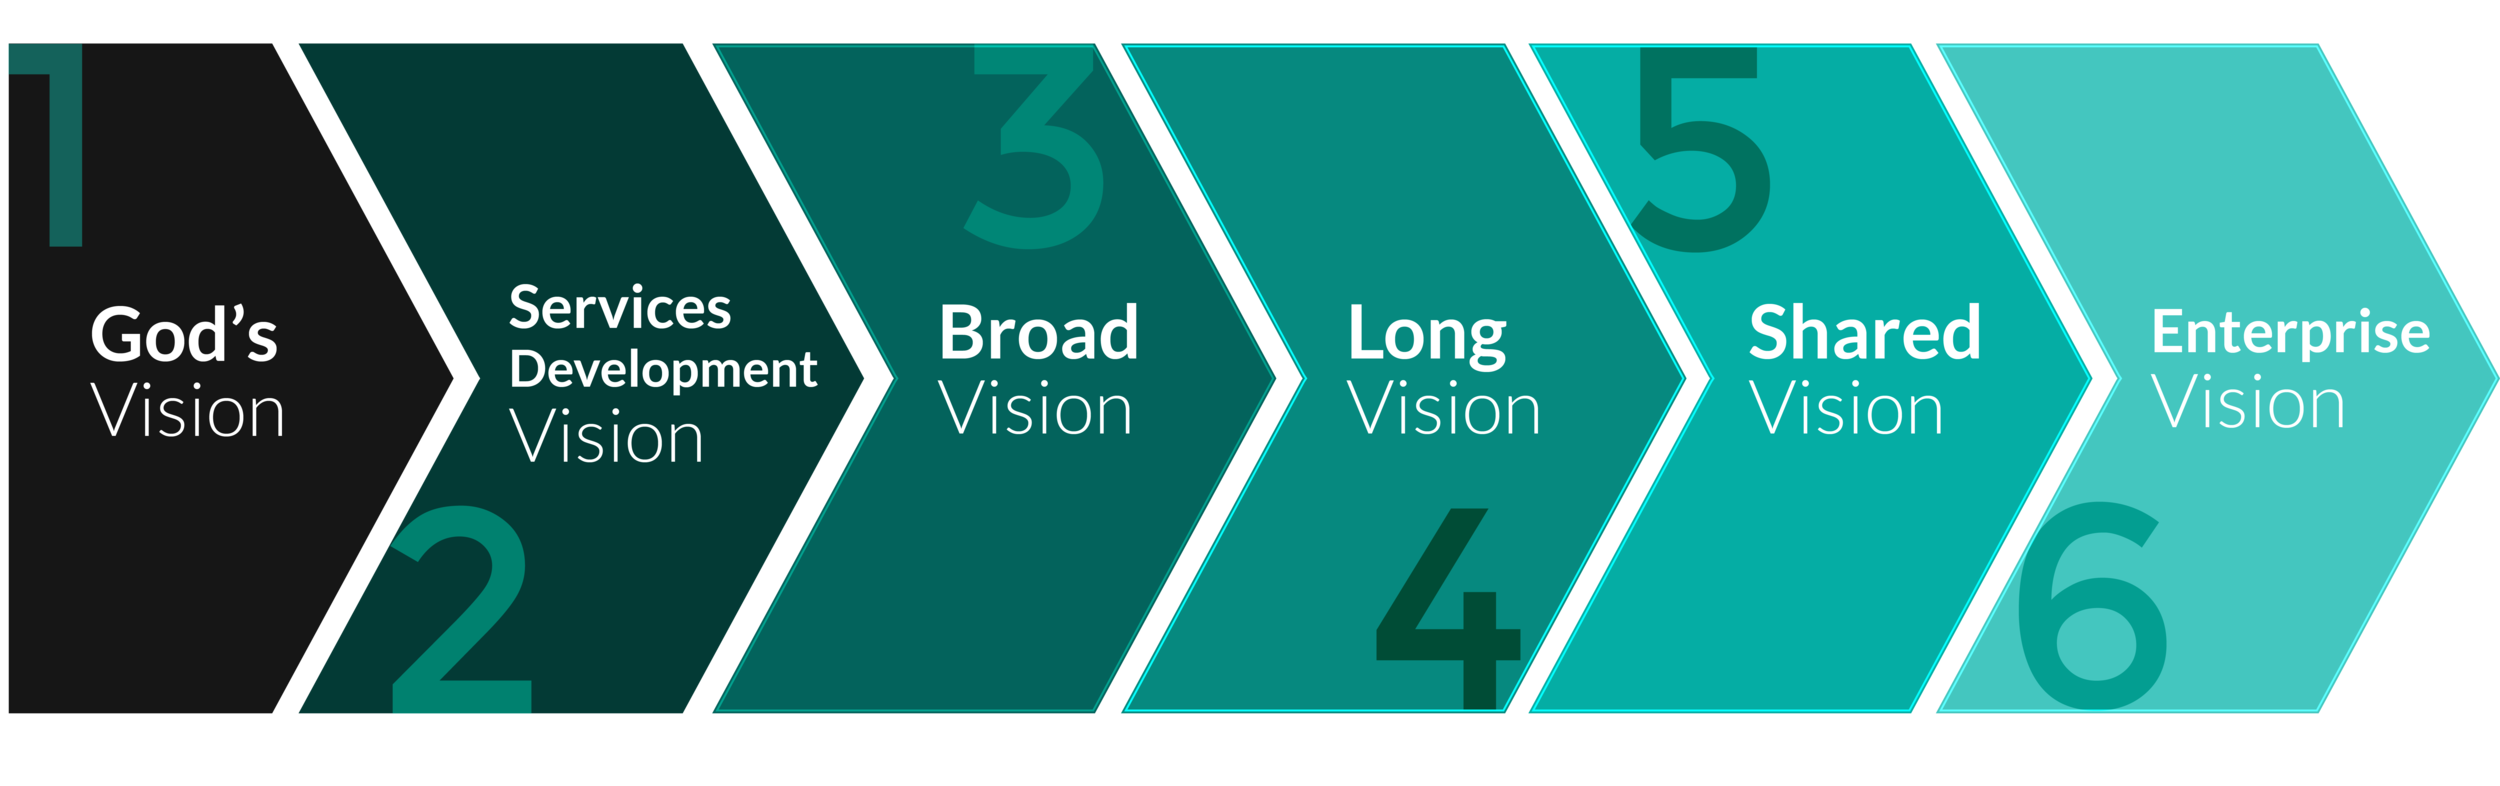 Vision Graphic.png